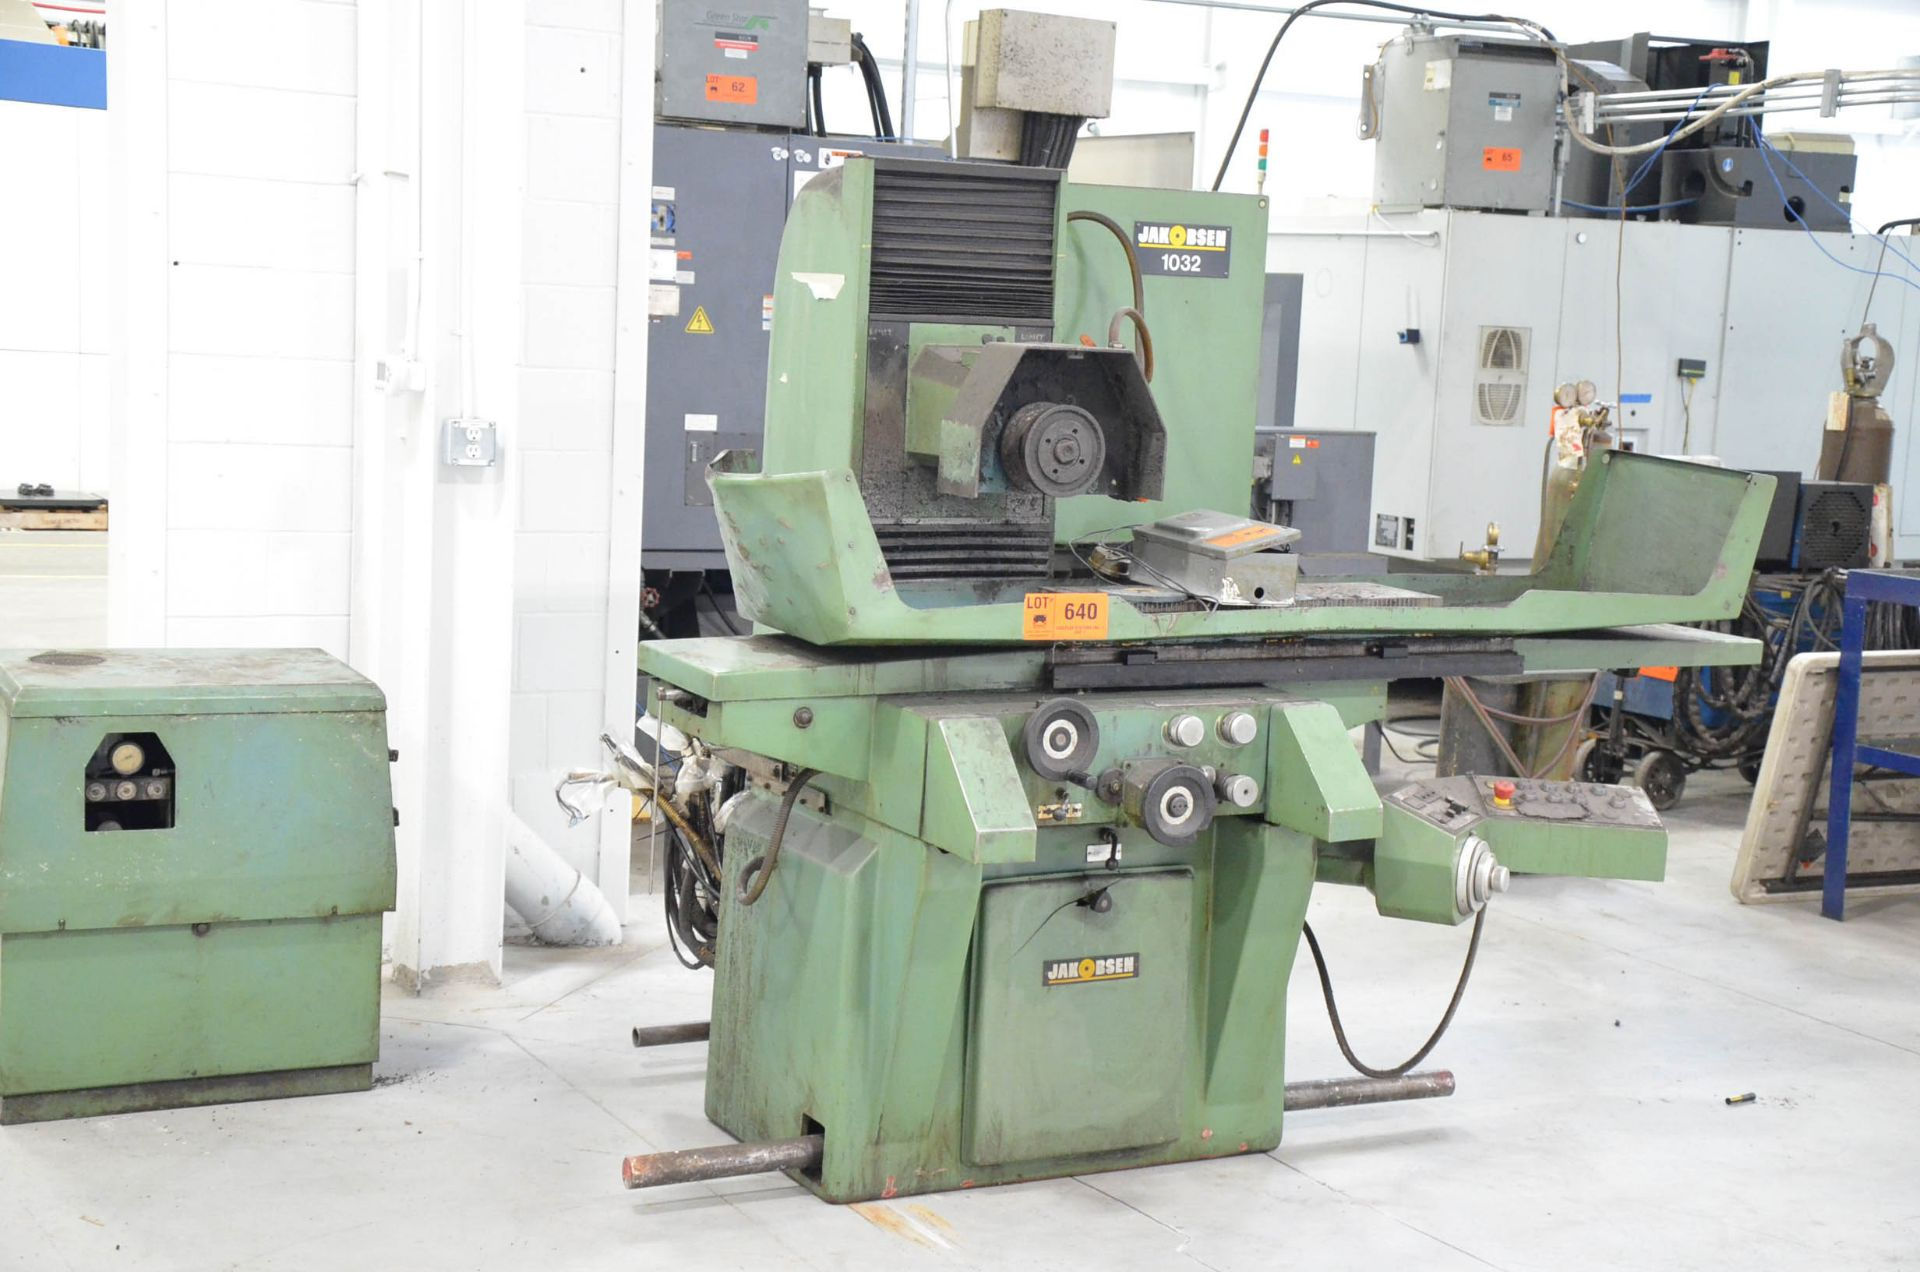 """JAKOBSEN 1032 HYDRAULIC SURFACE GRINDER WITH 10""""X32"""" MAGNETIC CHUCK, 14"""" WHEEL, INCREMENTAL DOWN-"""